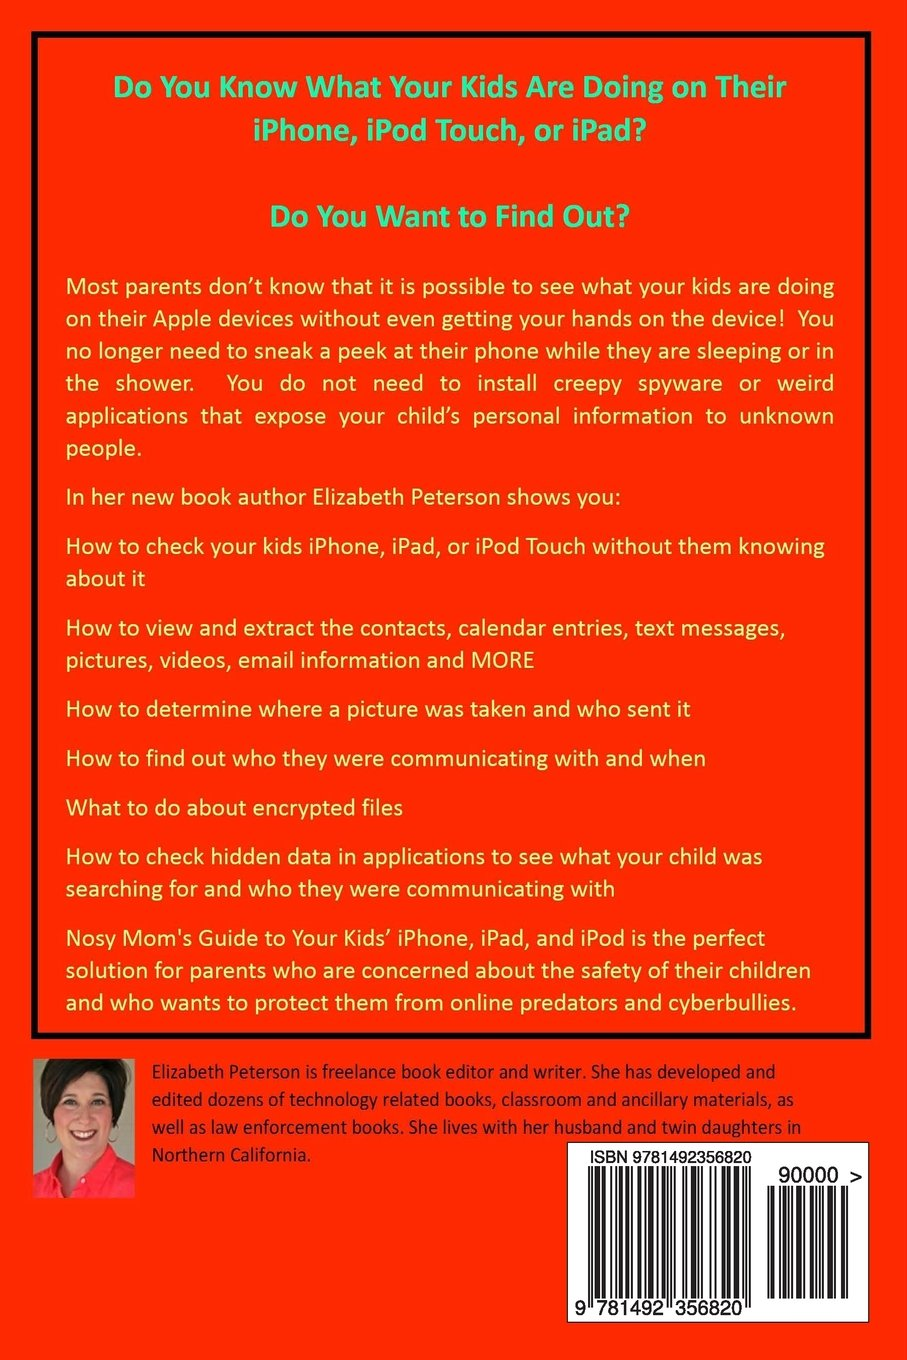 Nosy Moms Guide to Your Kids iPhone, iPad, and iPod